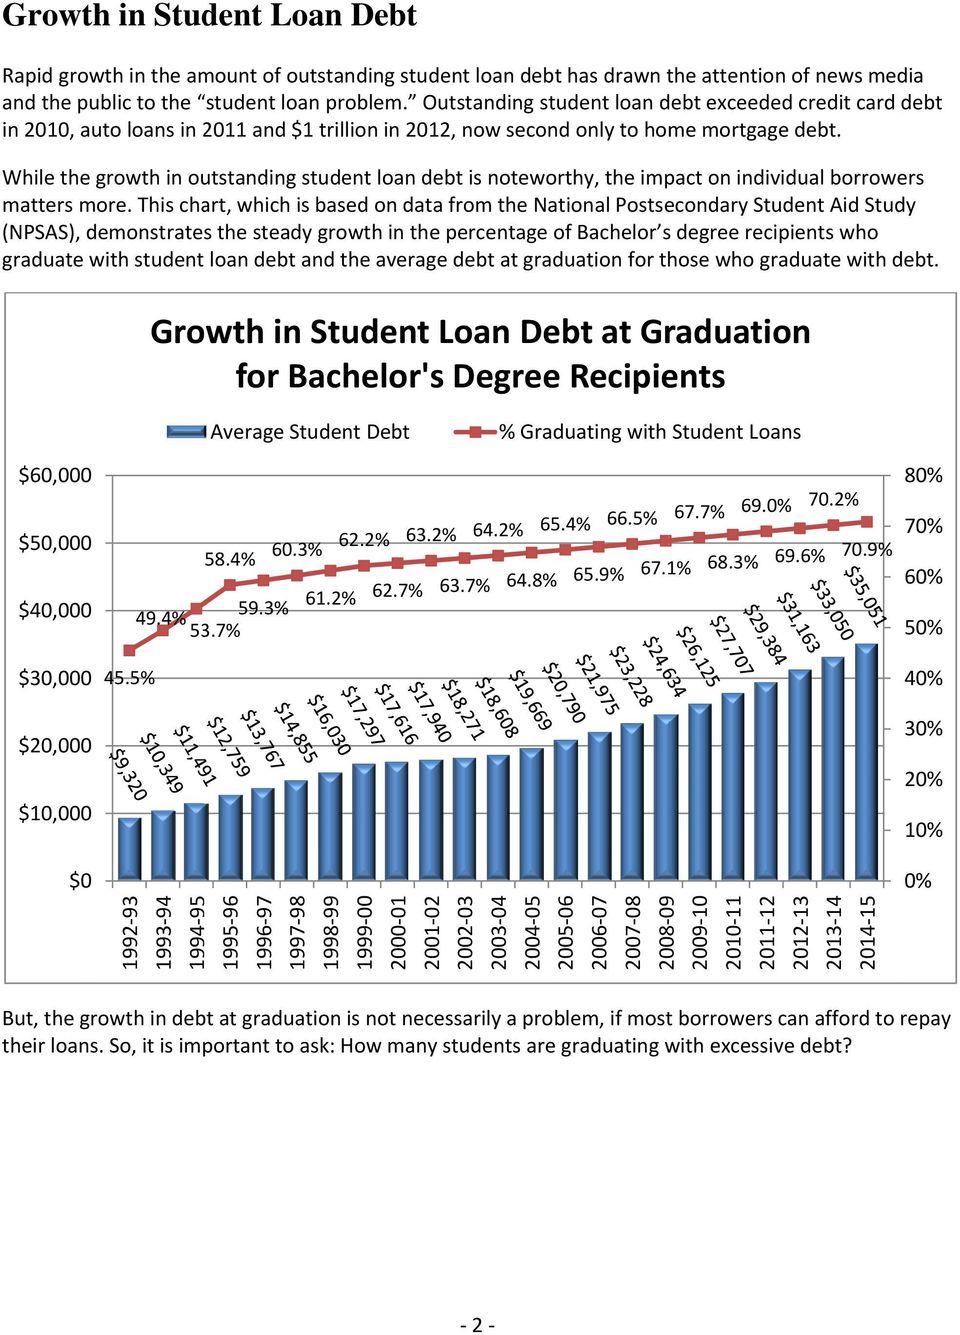 While the growth in outstanding student loan debt is noteworthy, the impact on individual borrowers matters more.